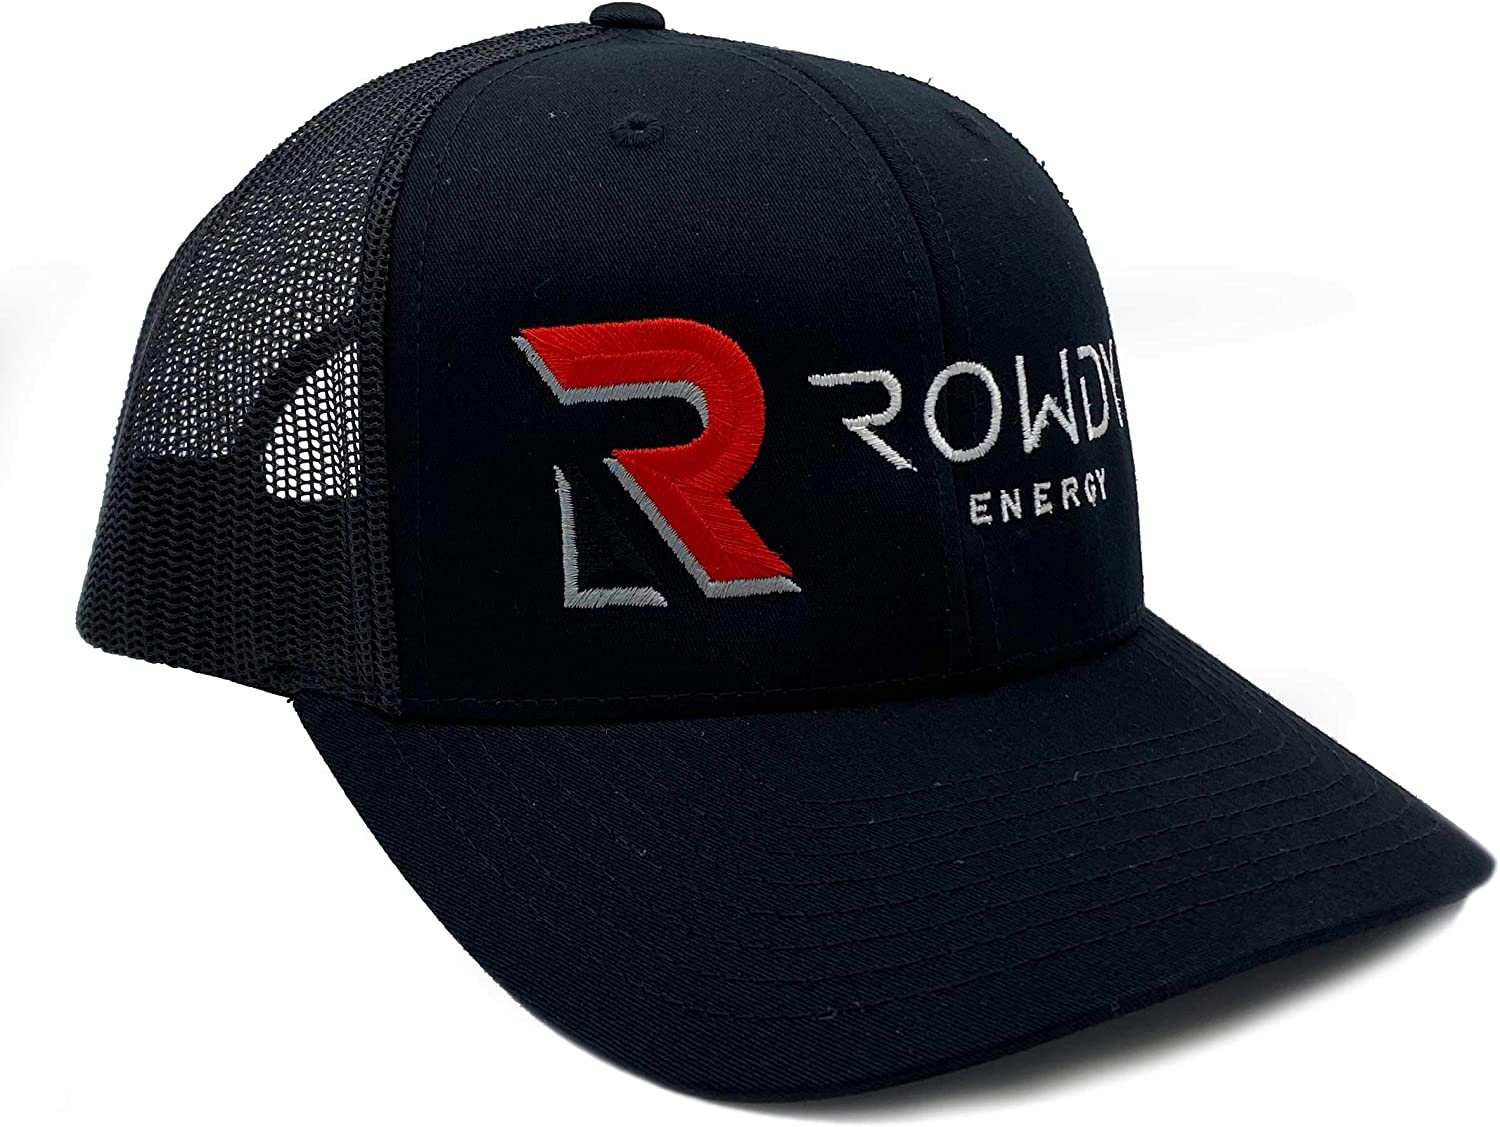 Rowdy Energy Award Trucker Style Mesh Snapback with Hat Back Large special price Closure